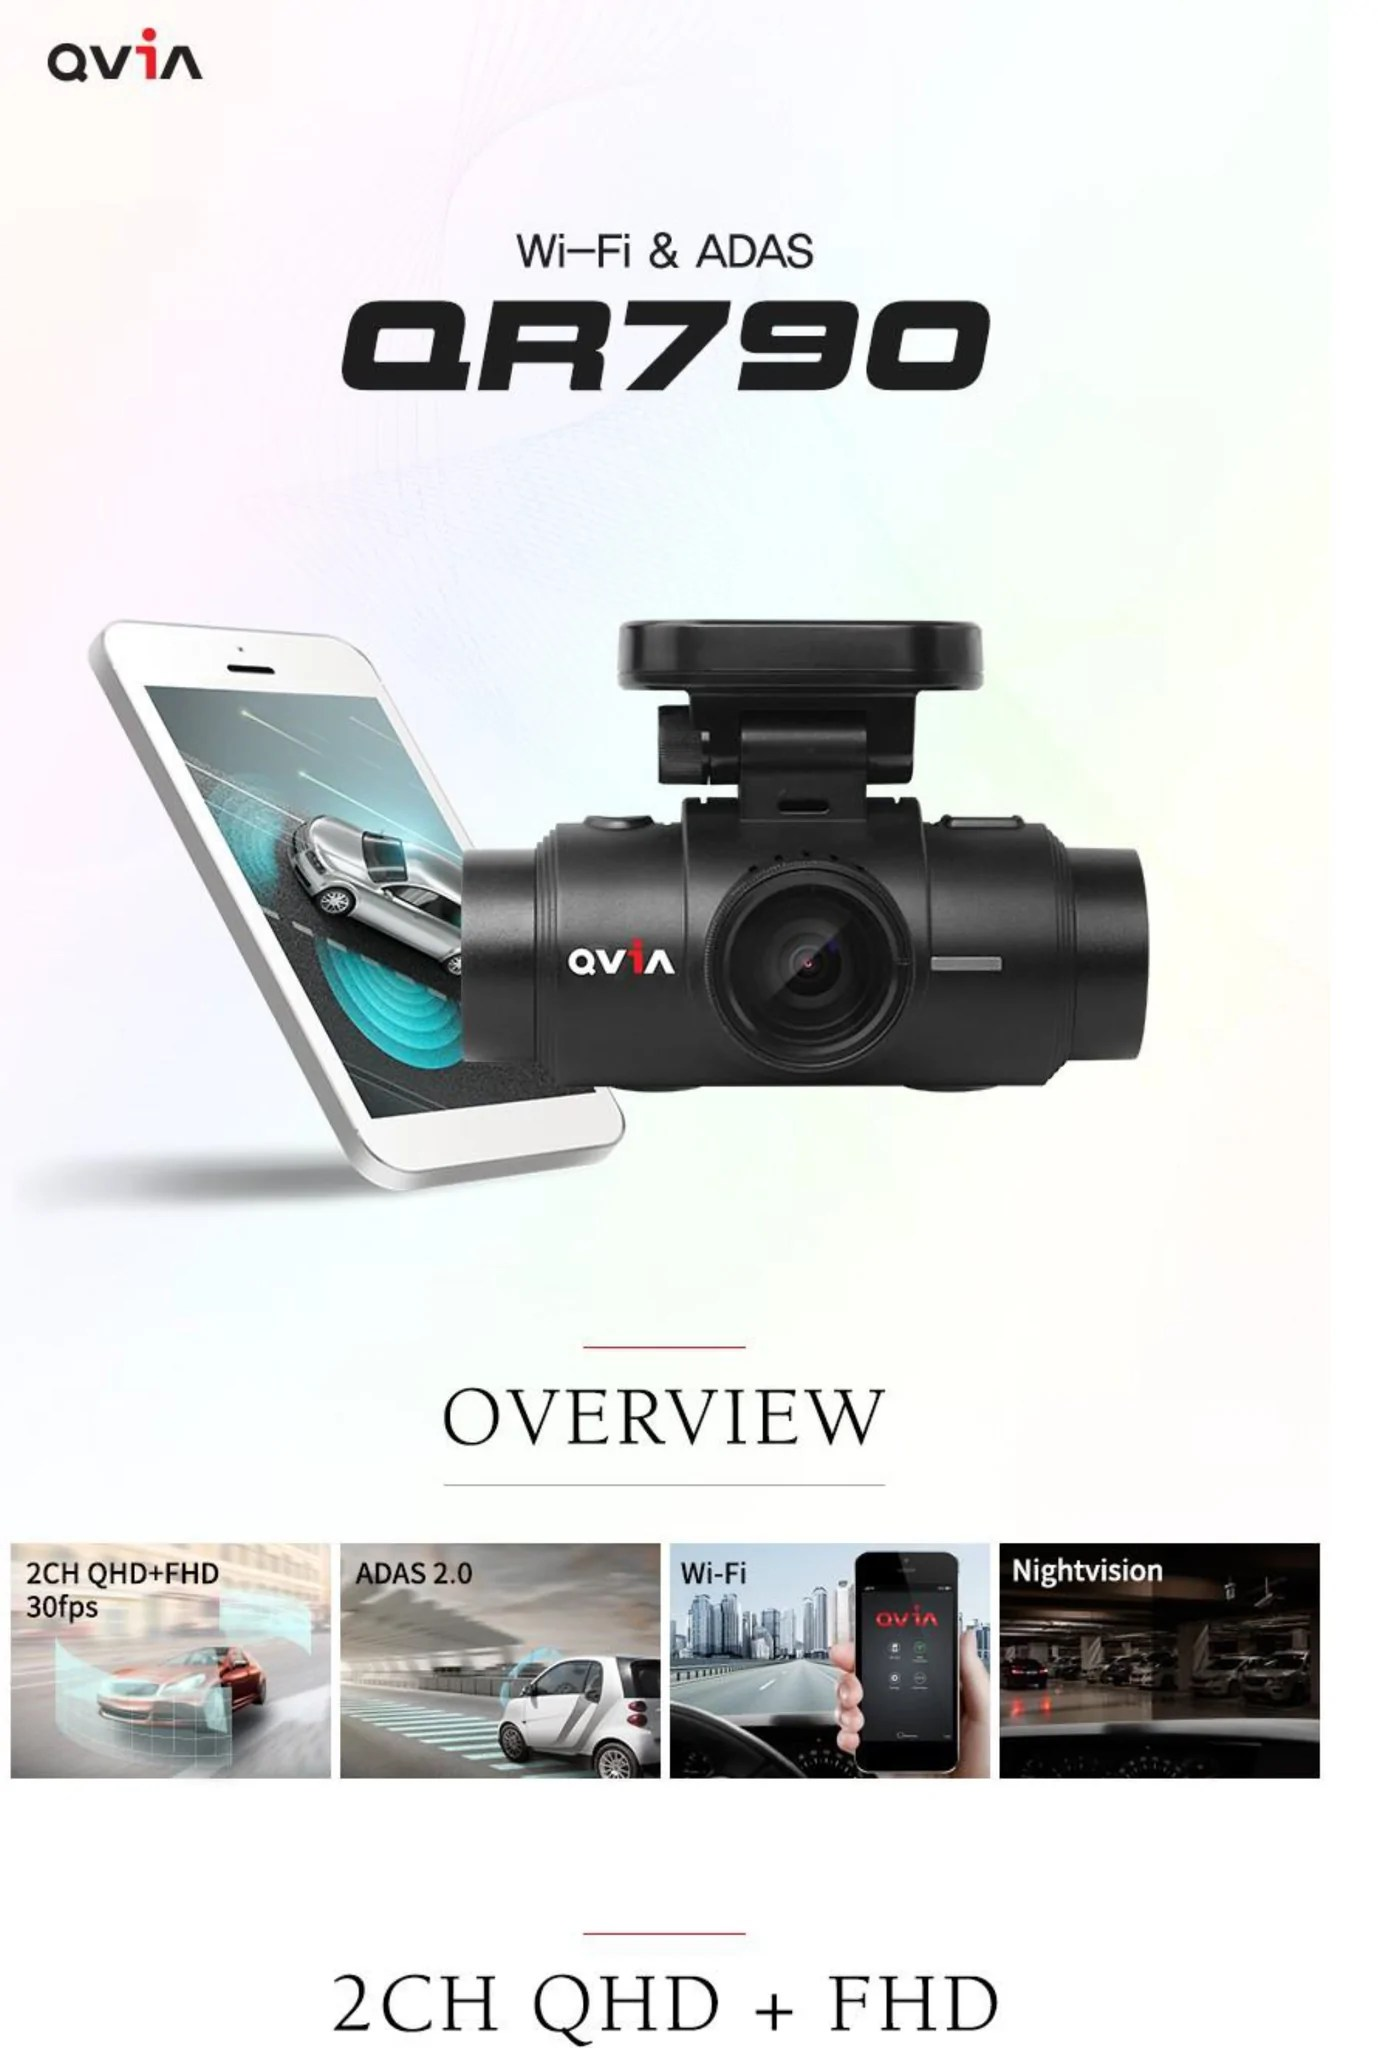 WiFi /& 64GB microSD Card ADAS QVIA QR790S Duo Quad HD 2560 x 1440p 30fps 2 Channel Car Dash Camera with GPS